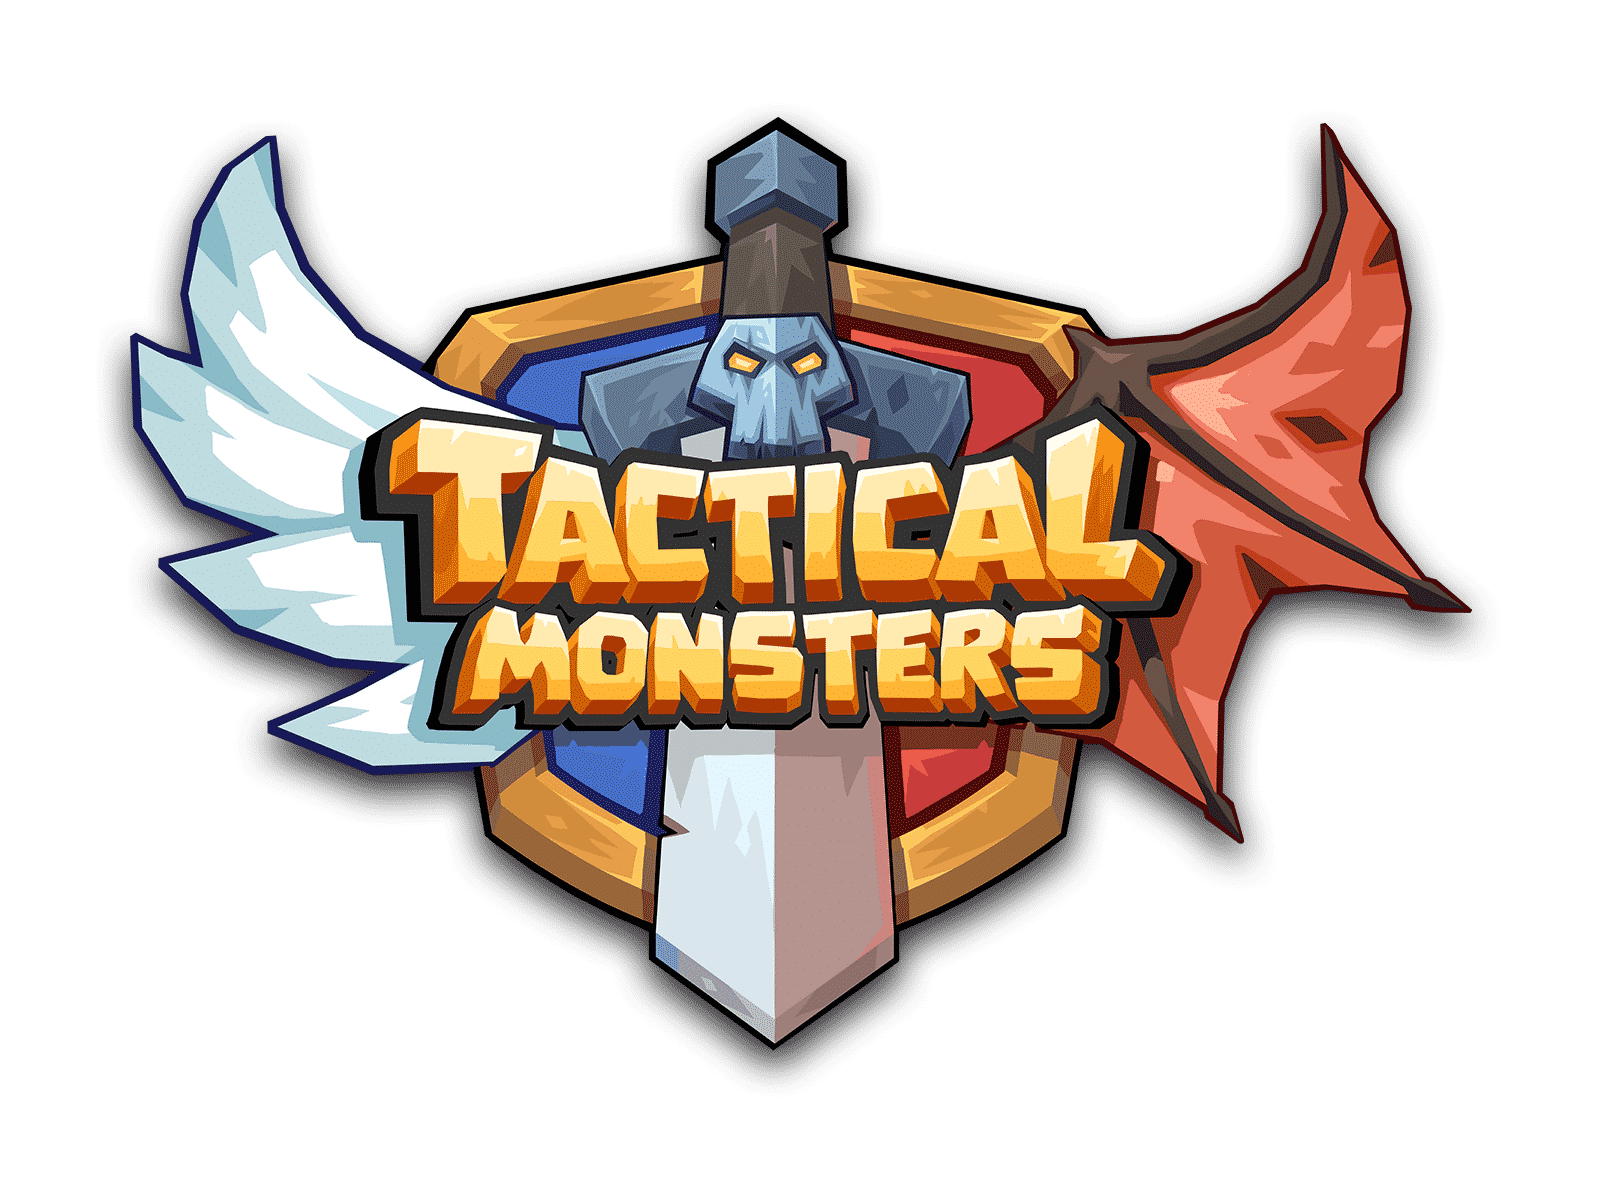 Tactical Monsters Rumble Arena, logo